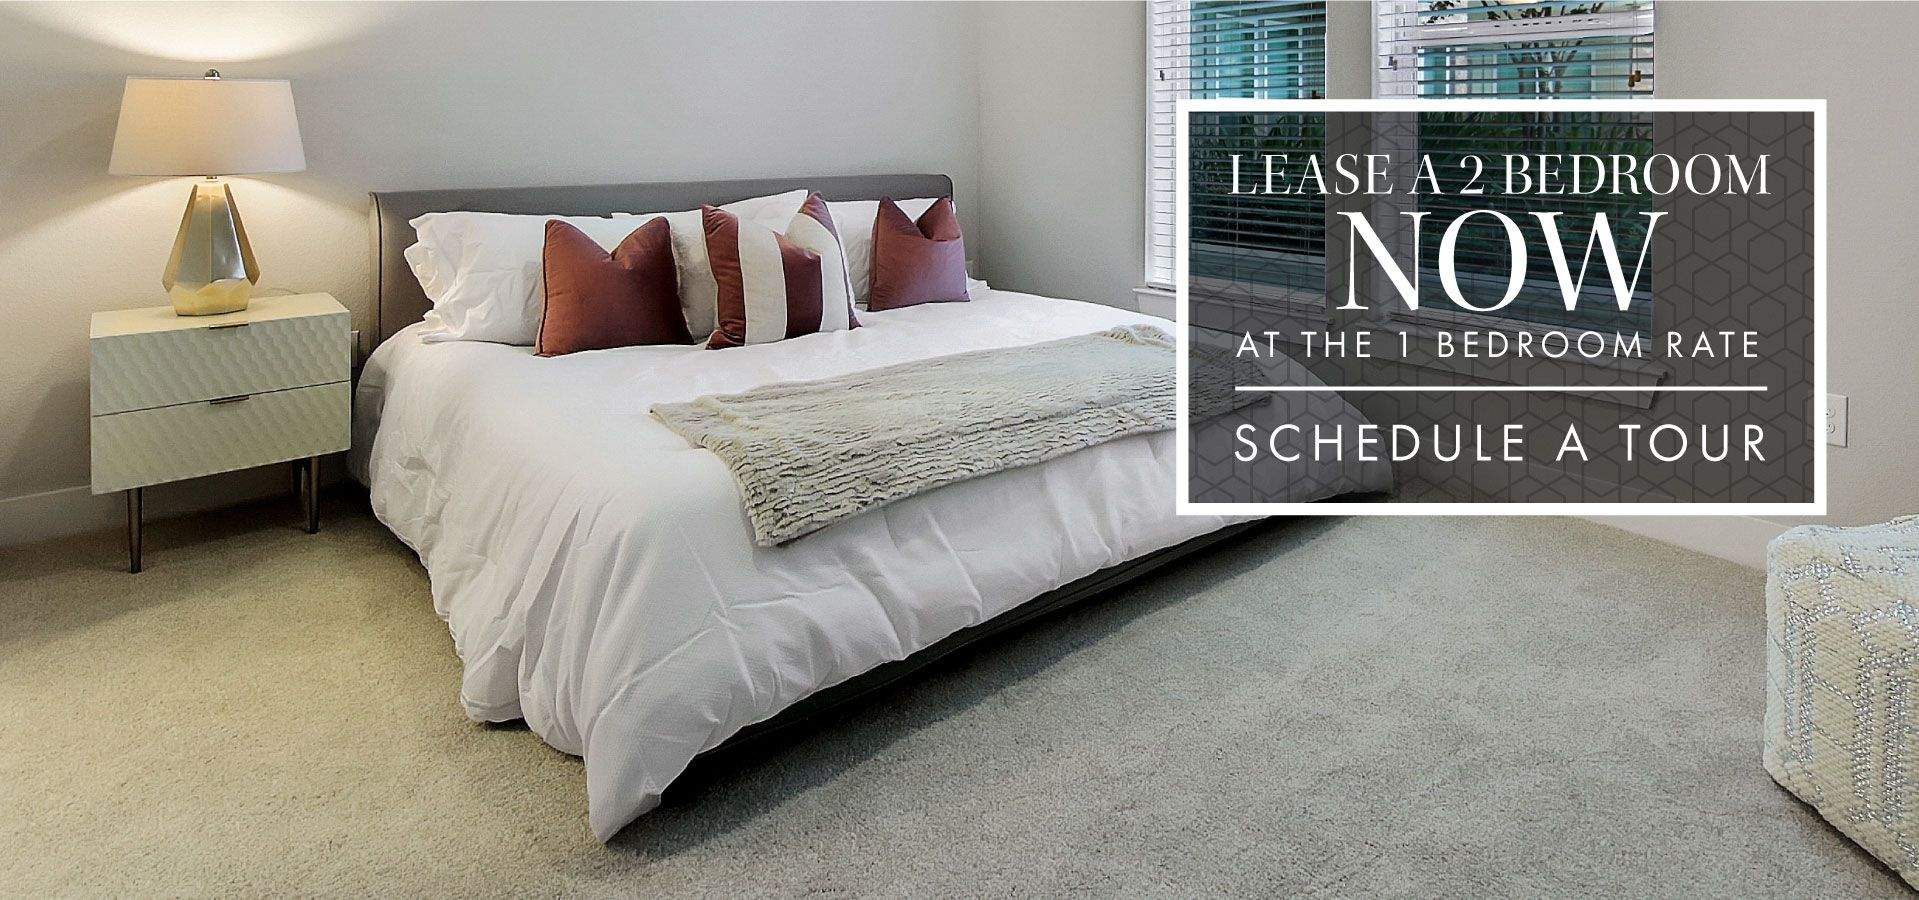 Lease A 2 Bedroom NOW at the 1 Bedroom Rate | Must Apply By This Friday